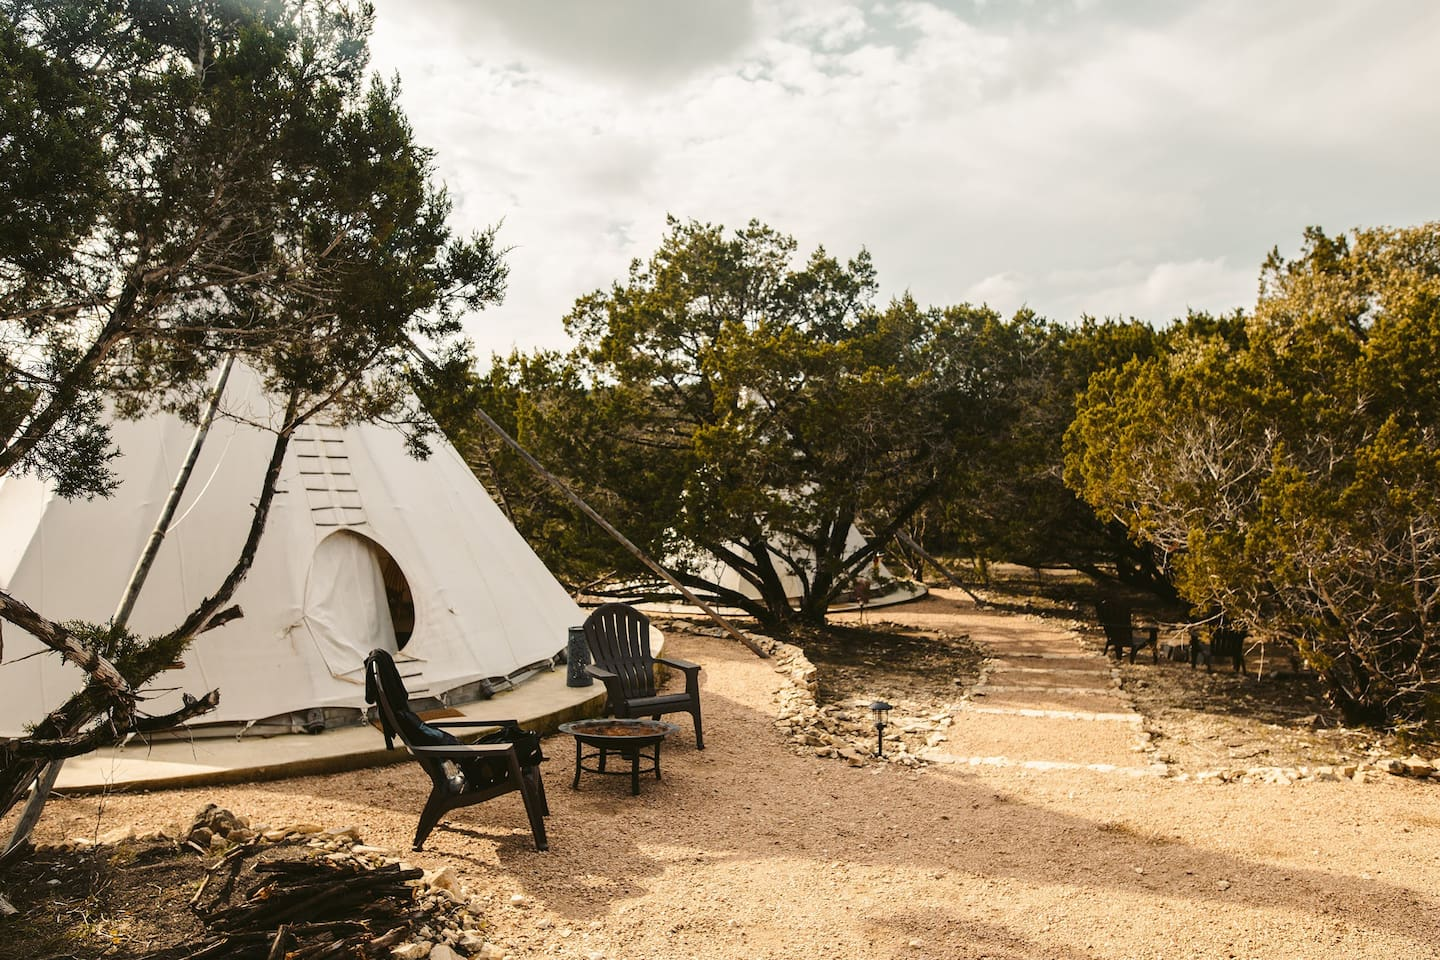 Tipi La Estrella with its private fire pit and two outdoor chairs. To the right, down the steps is tipi La Rosa.